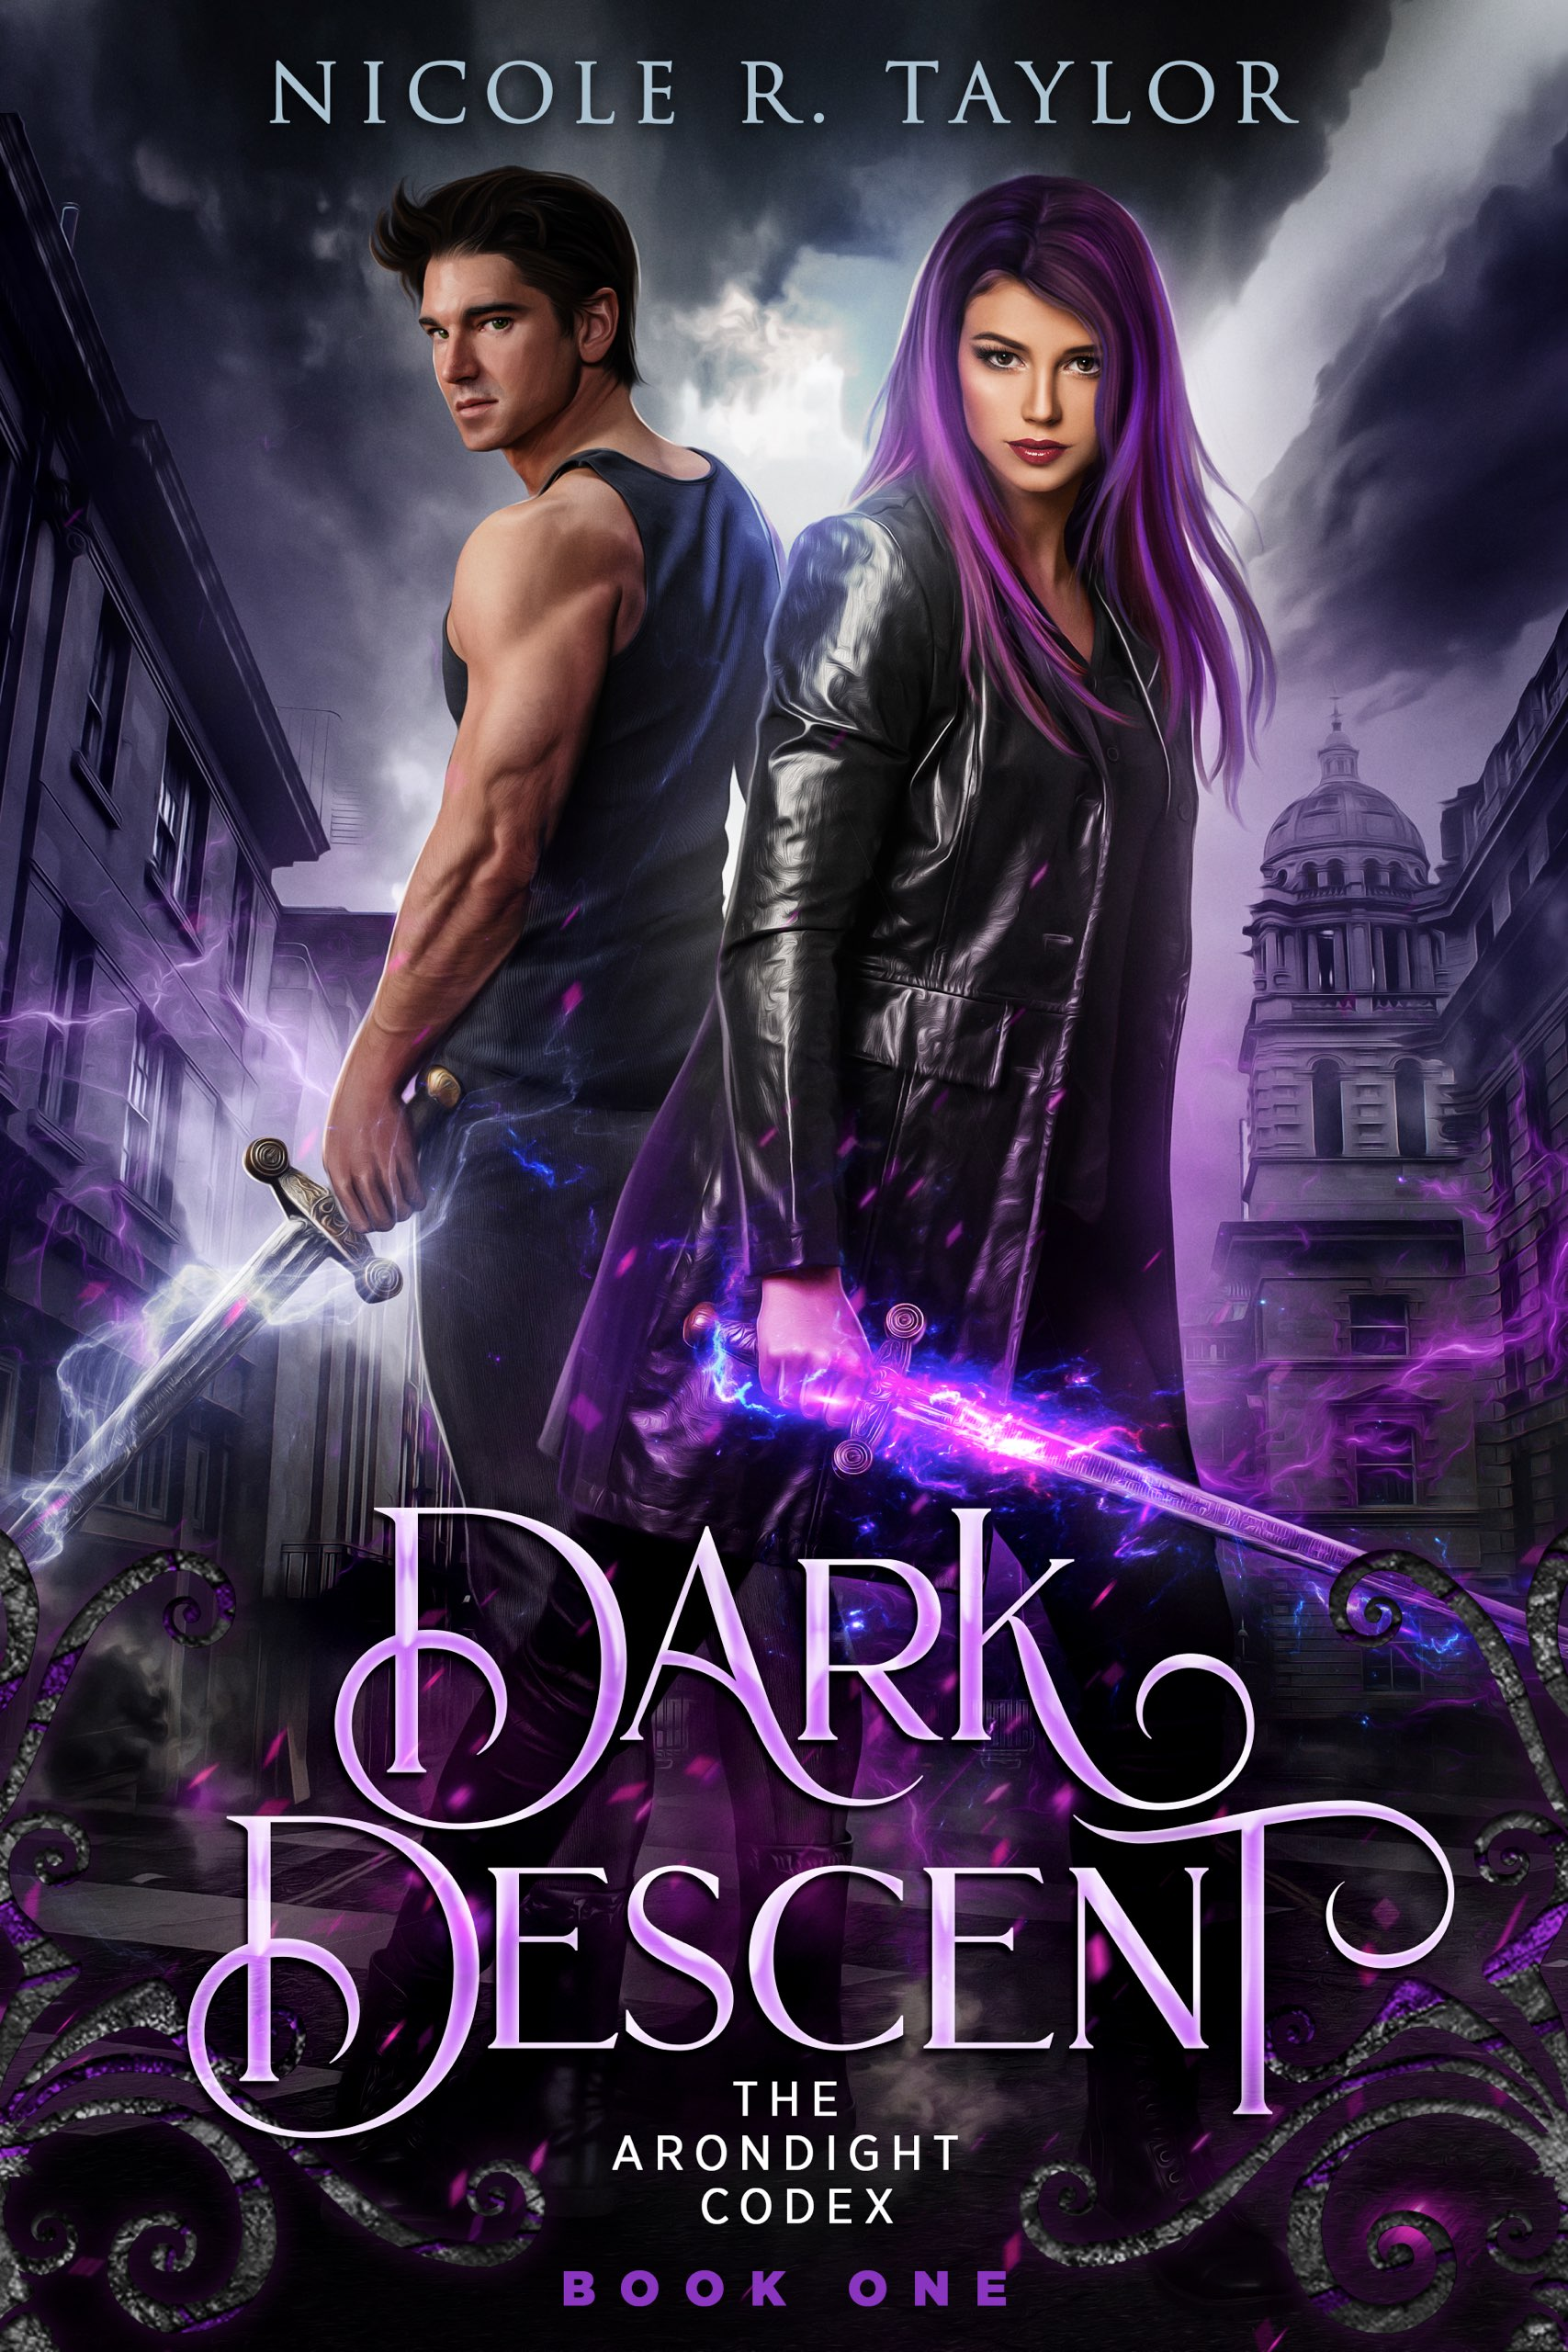 Dark Descent (The Arondight Codex #1) (sst-cccxxi)